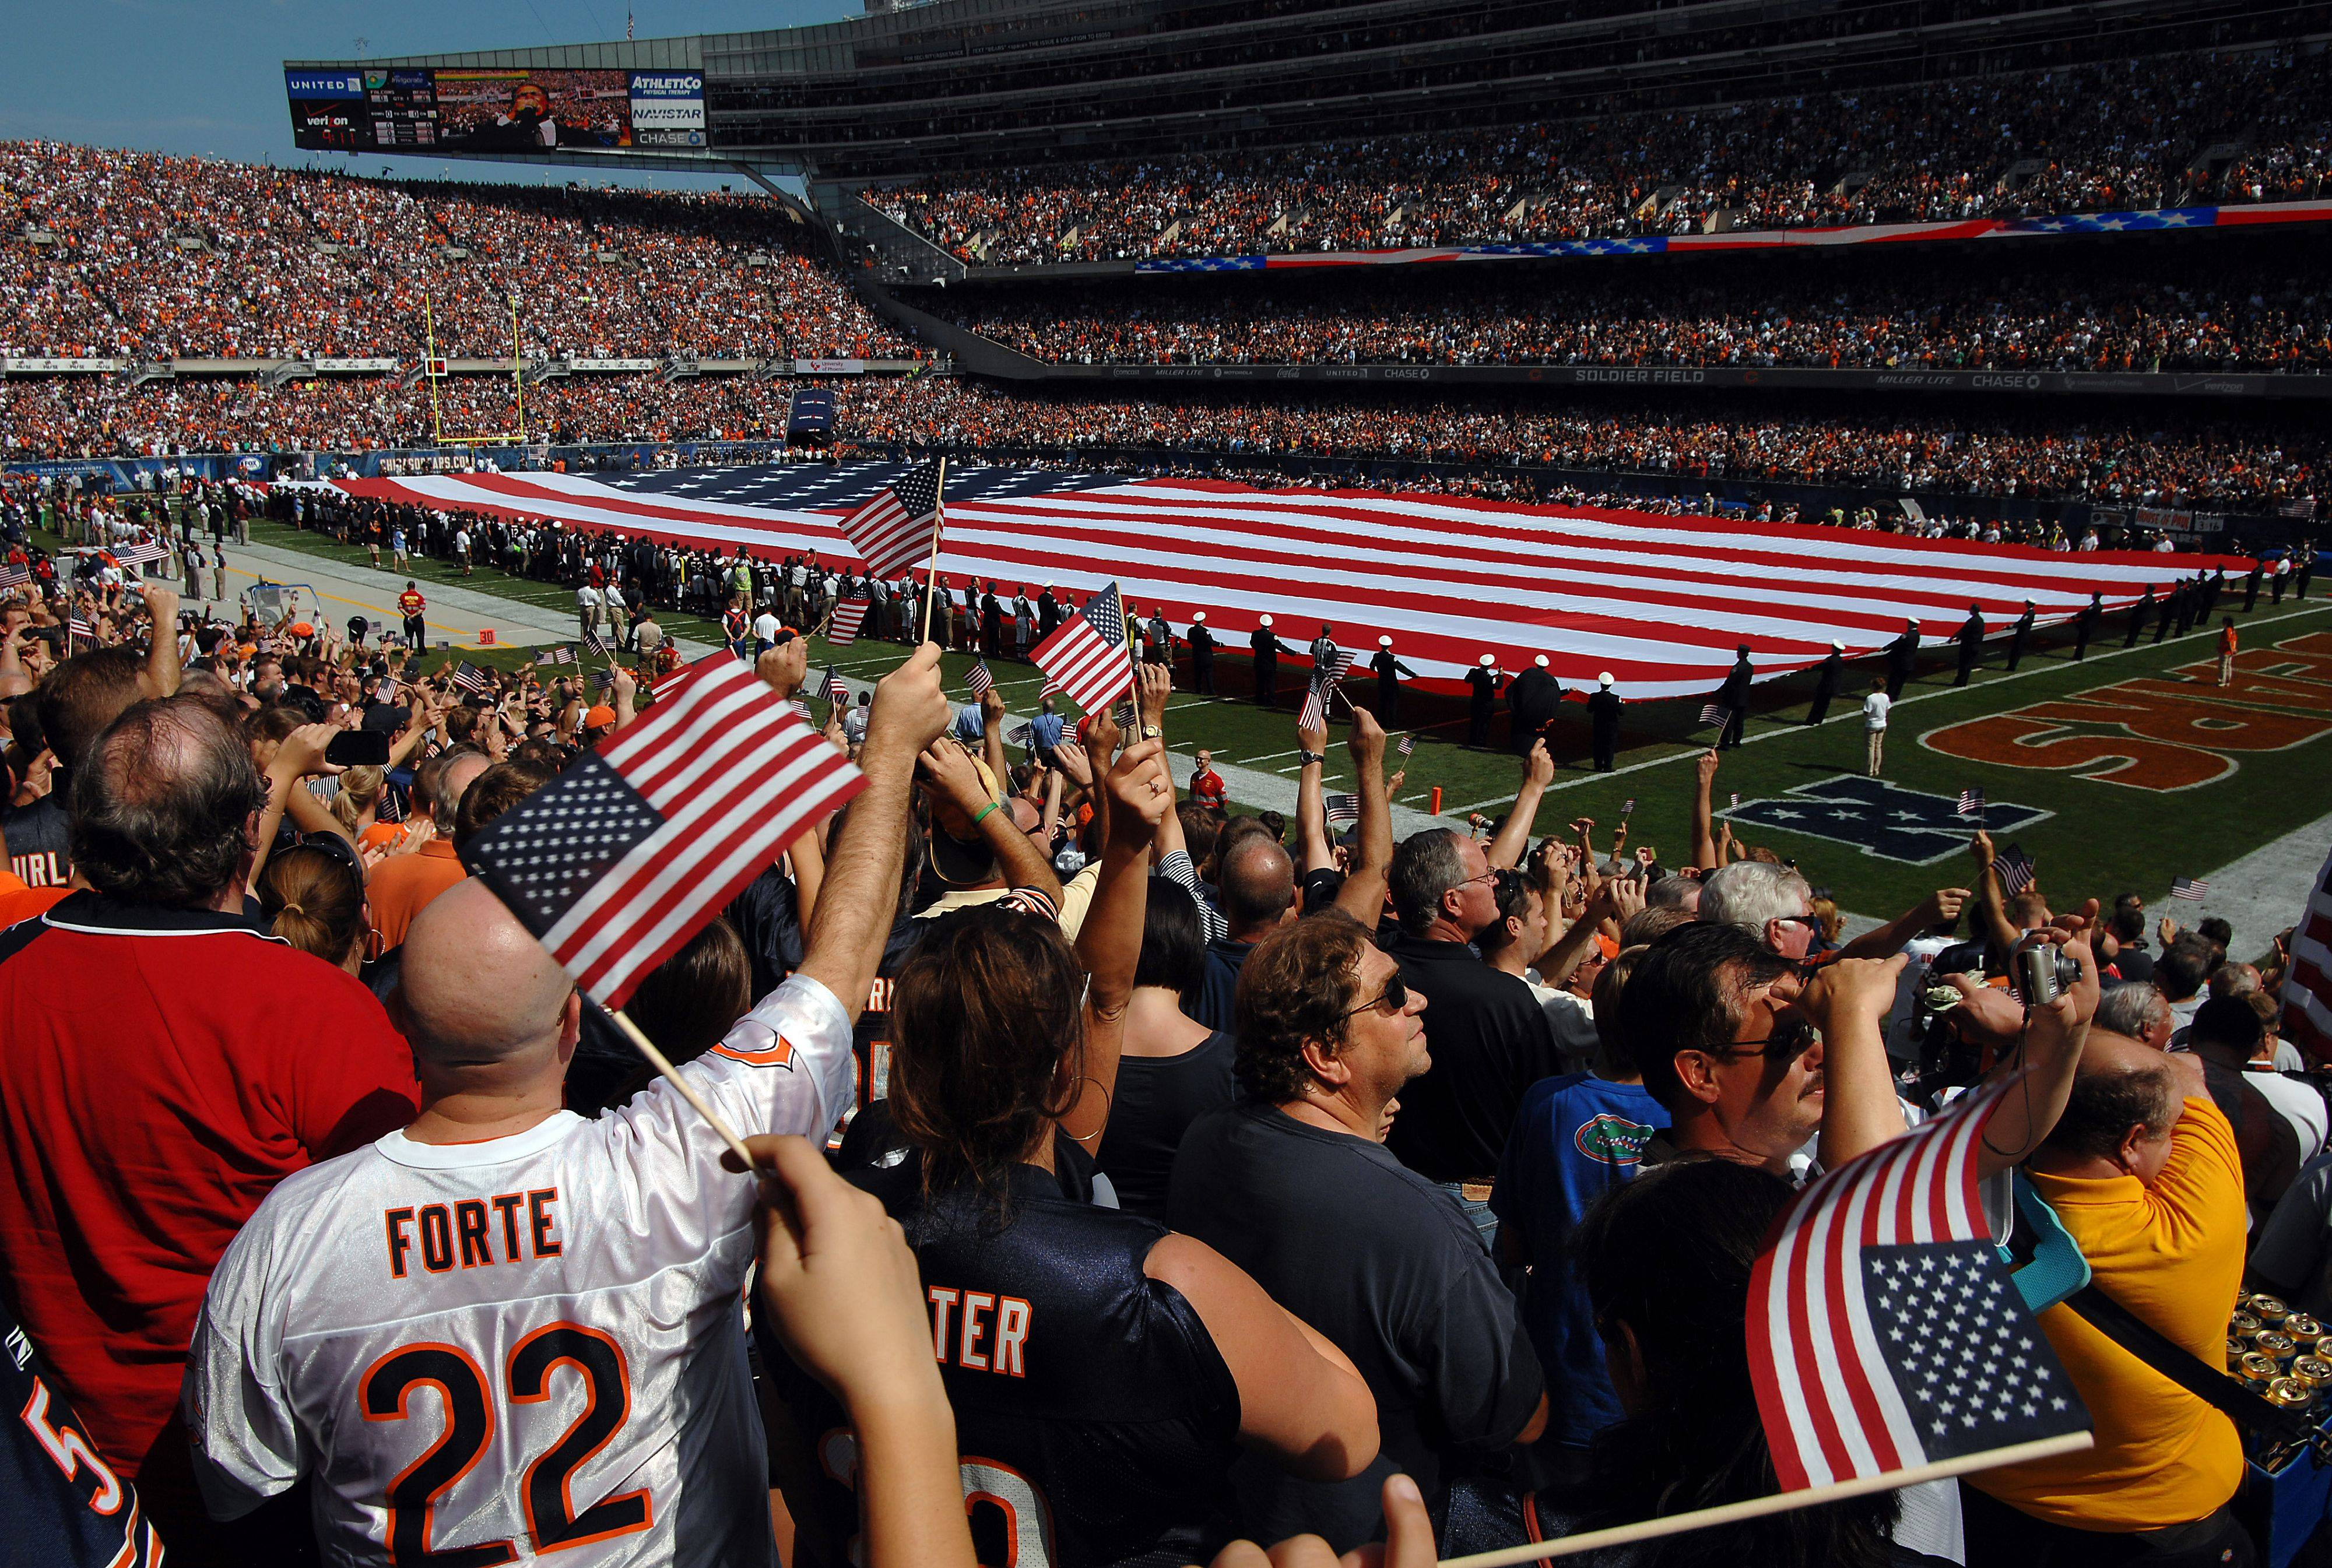 Bears fans show their patriotic spirit before Sunday's victory at Soldier Field by waving flags and cheering. A moment of silence was also held for the victims of the 9/11 attacks.